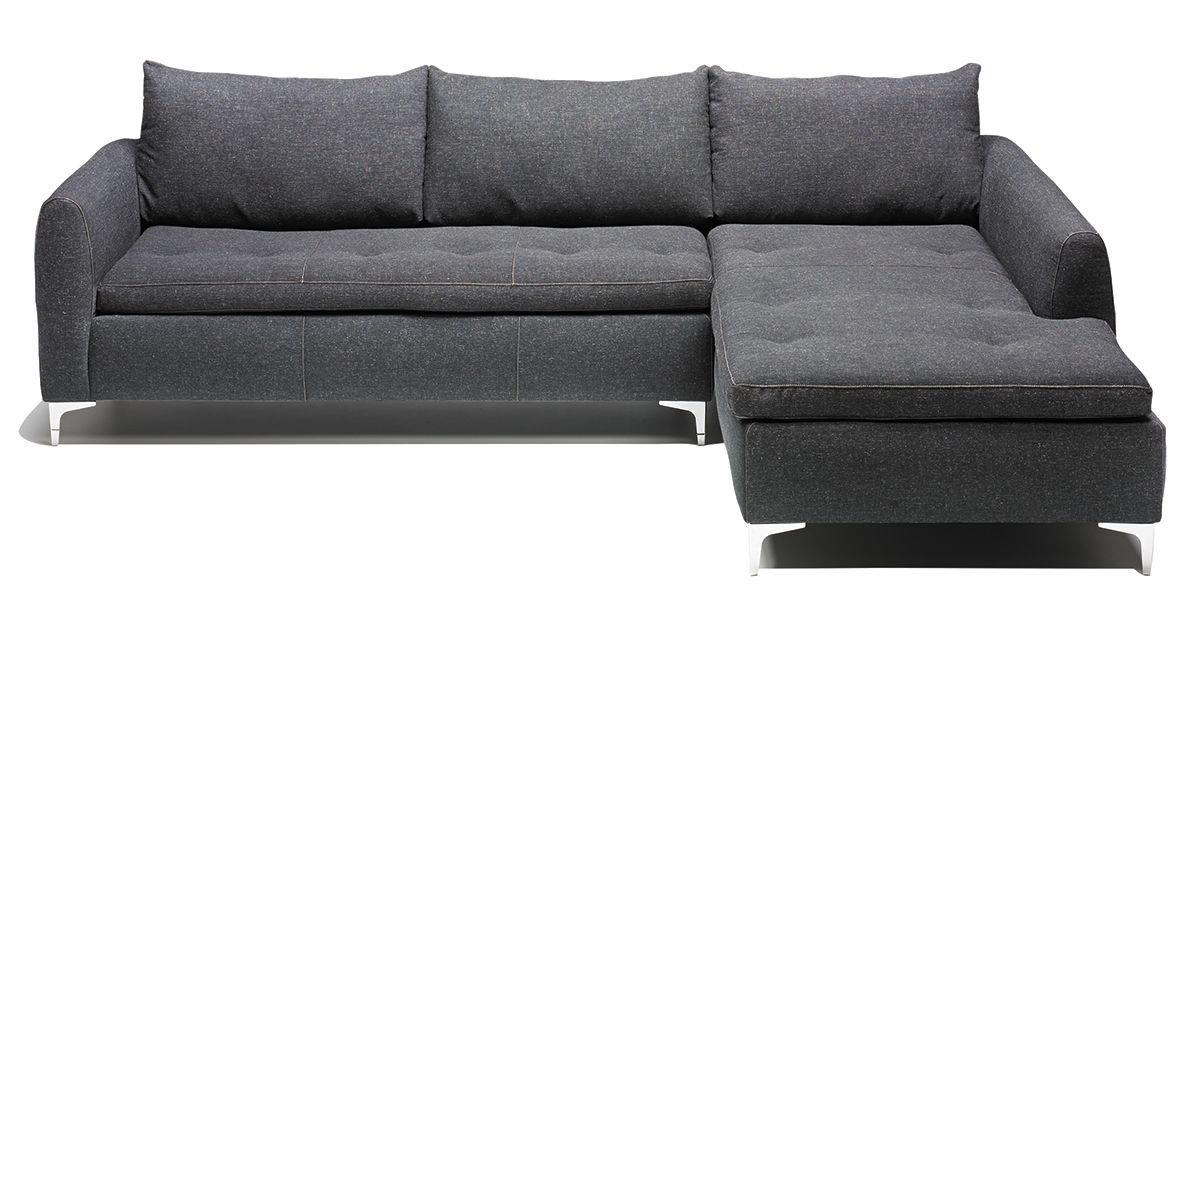 The Dump Furniture - Camden Chaise Sectional